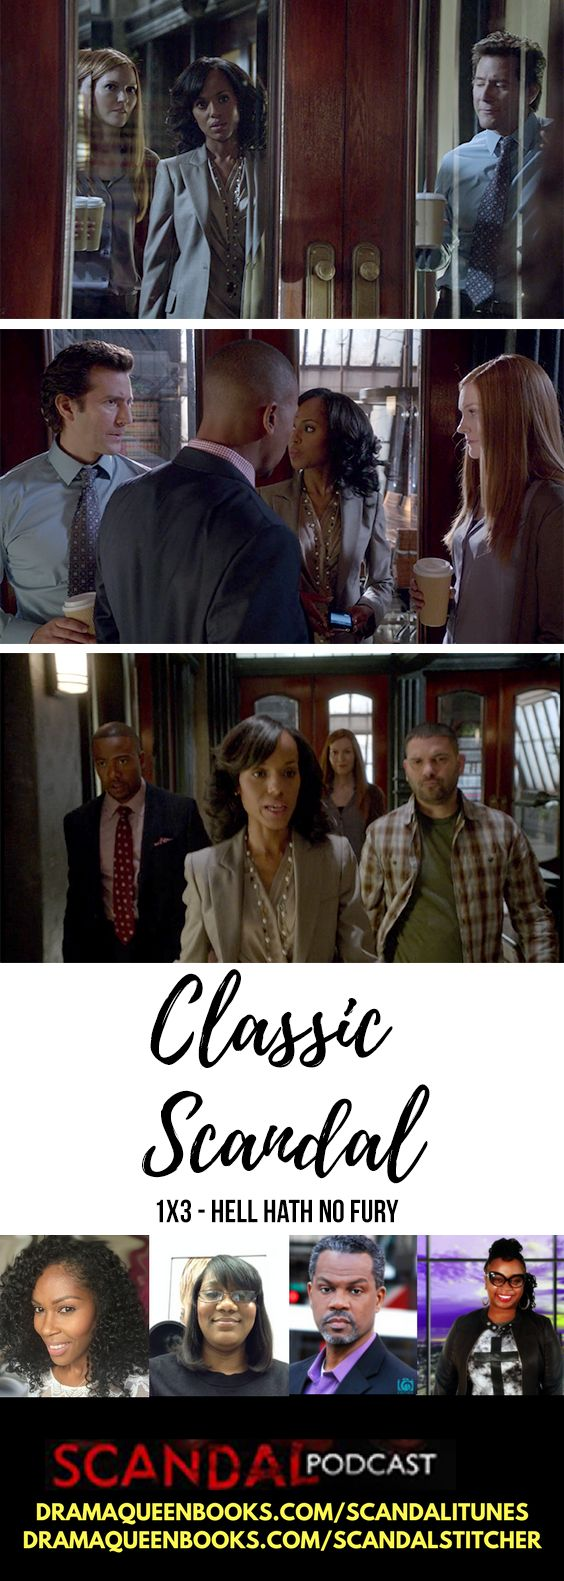 Classic Scandal - Season 1 Episode 3 Hell Hath No Fury ABC's Hit TV Show with Olivia Pope, Fitz, Cyrus, Mellie and OPA's Team. In this episode Amanda Tanner was being a brat but agreed to work with Olivia to mitigate the fallout of her quitting the white house and because of the affair.